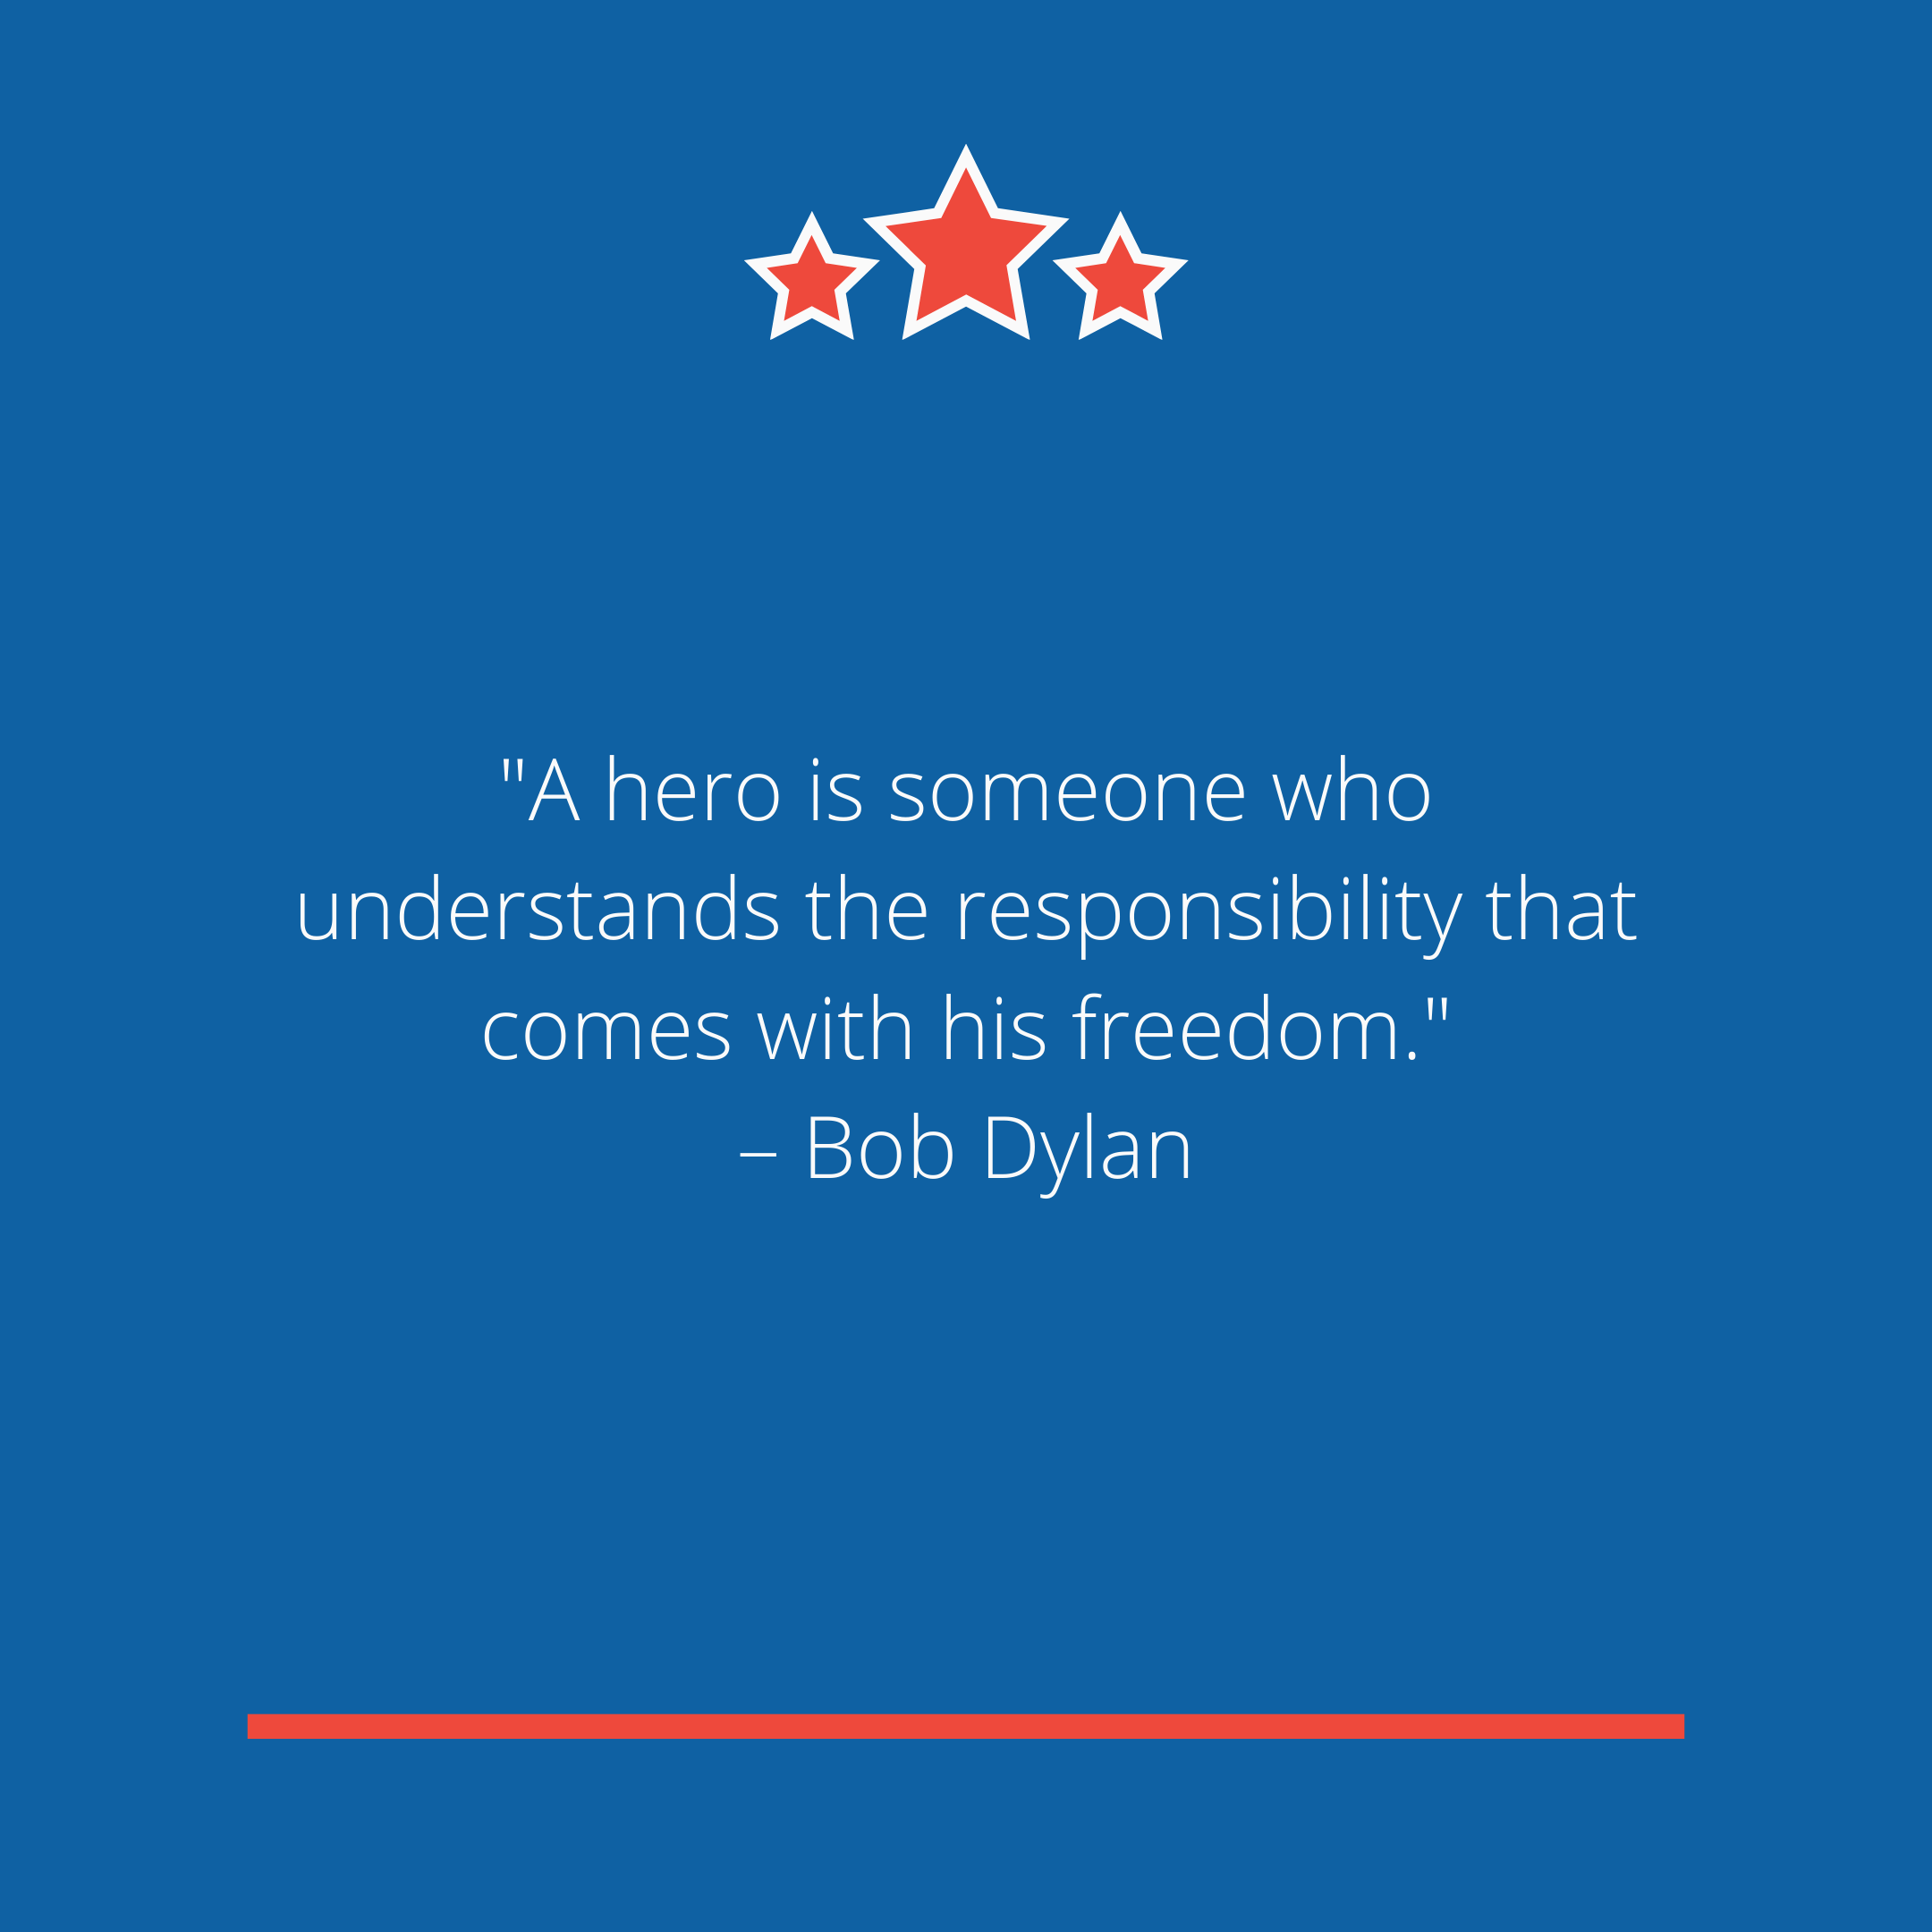 """A hero is someone who understands the responsibility that comes with his freedom."" –Bob Dylan"